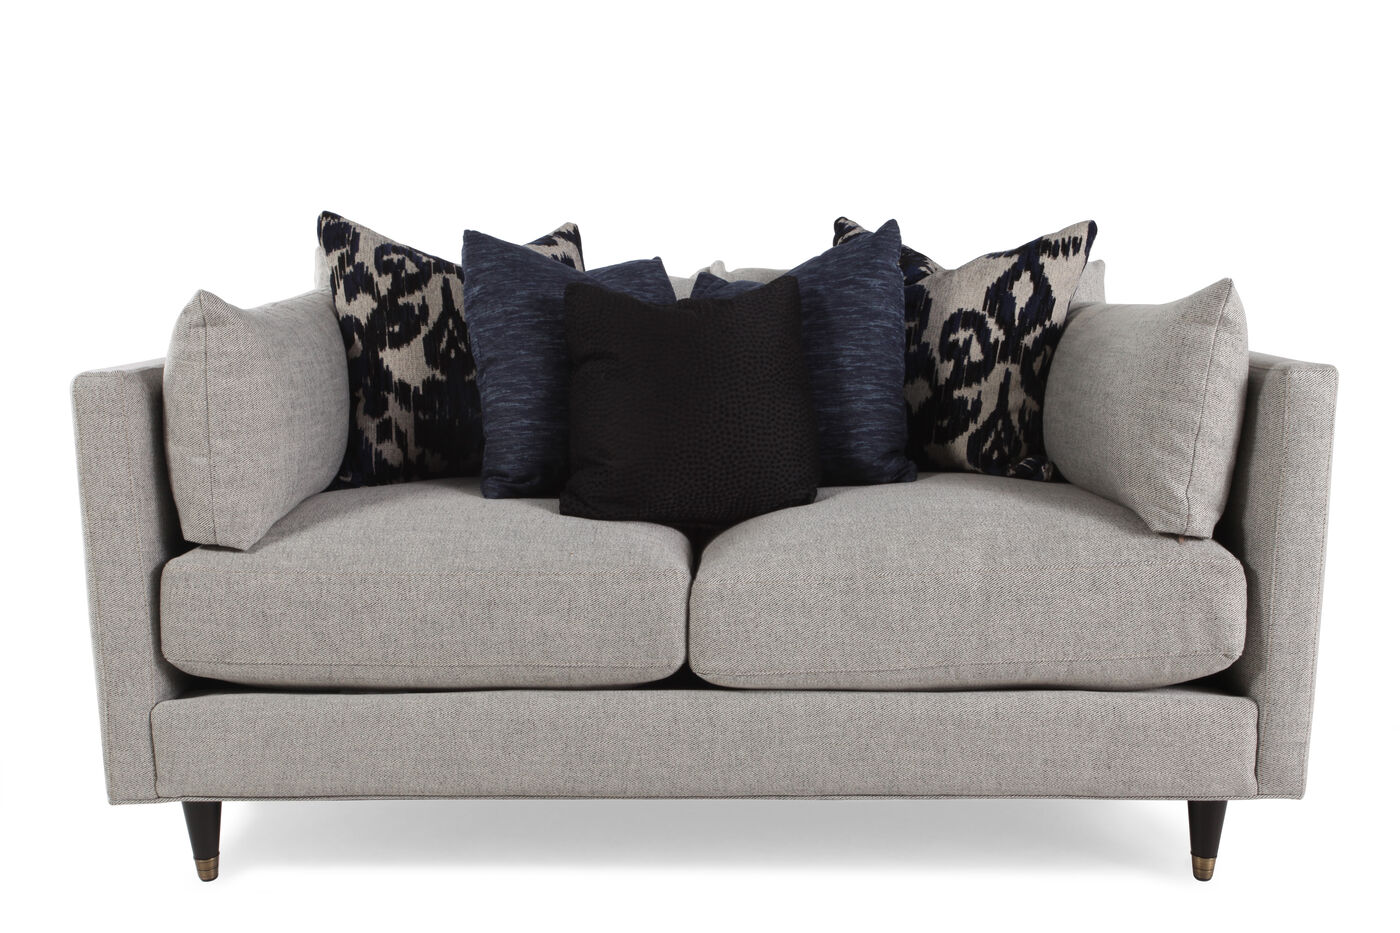 Low profile 70 sofa in cream mathis brothers furniture for Brother v brother living room